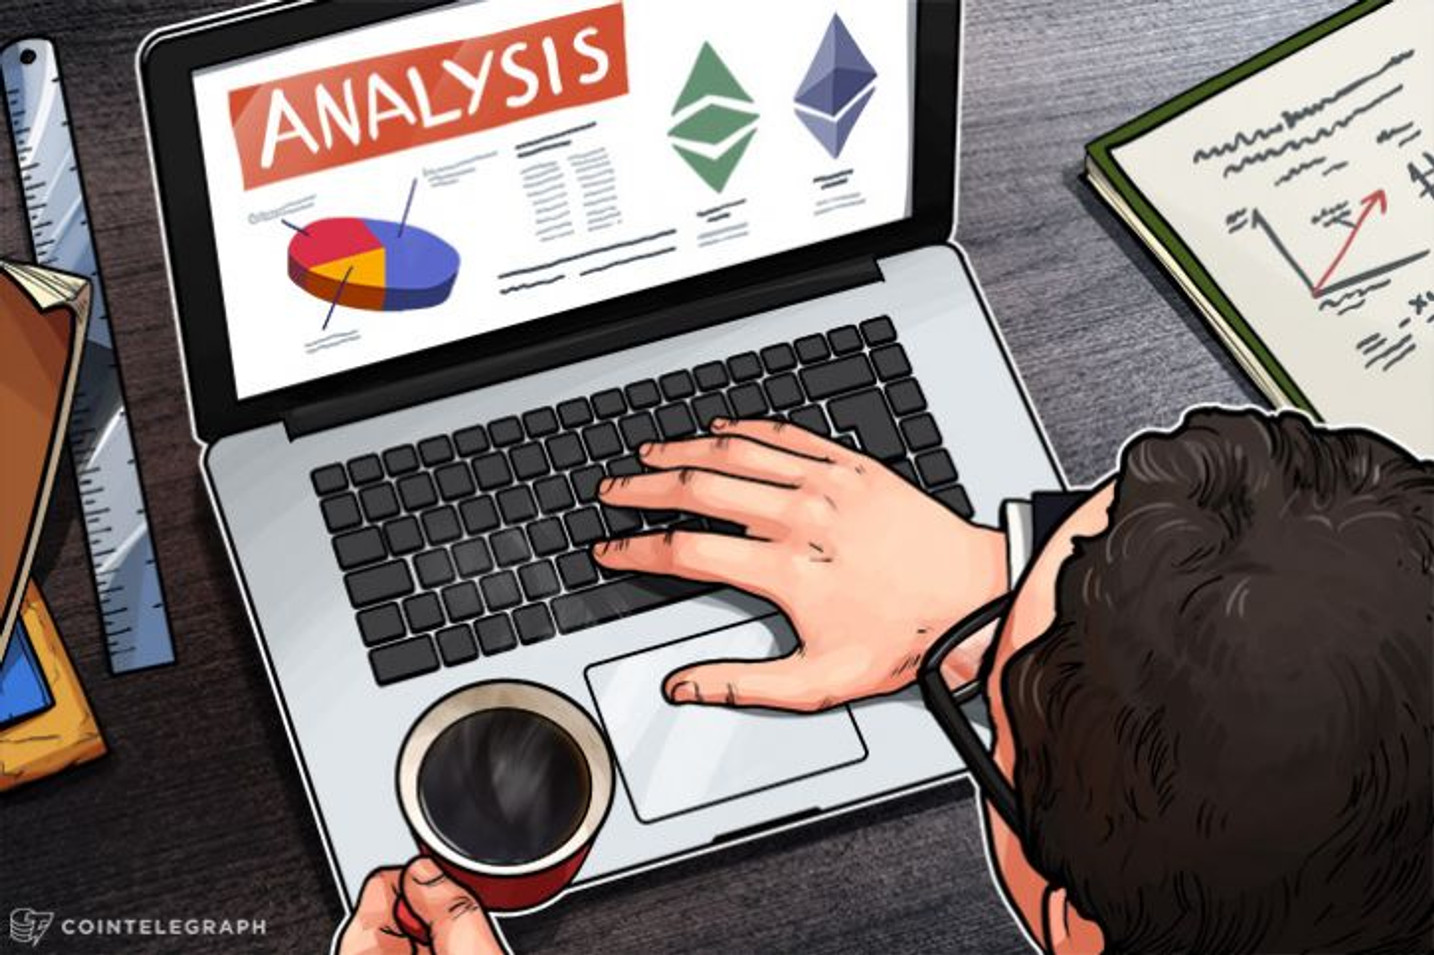 Ethereum Classic Becomes First Crypto Research On Bloomberg Terminals